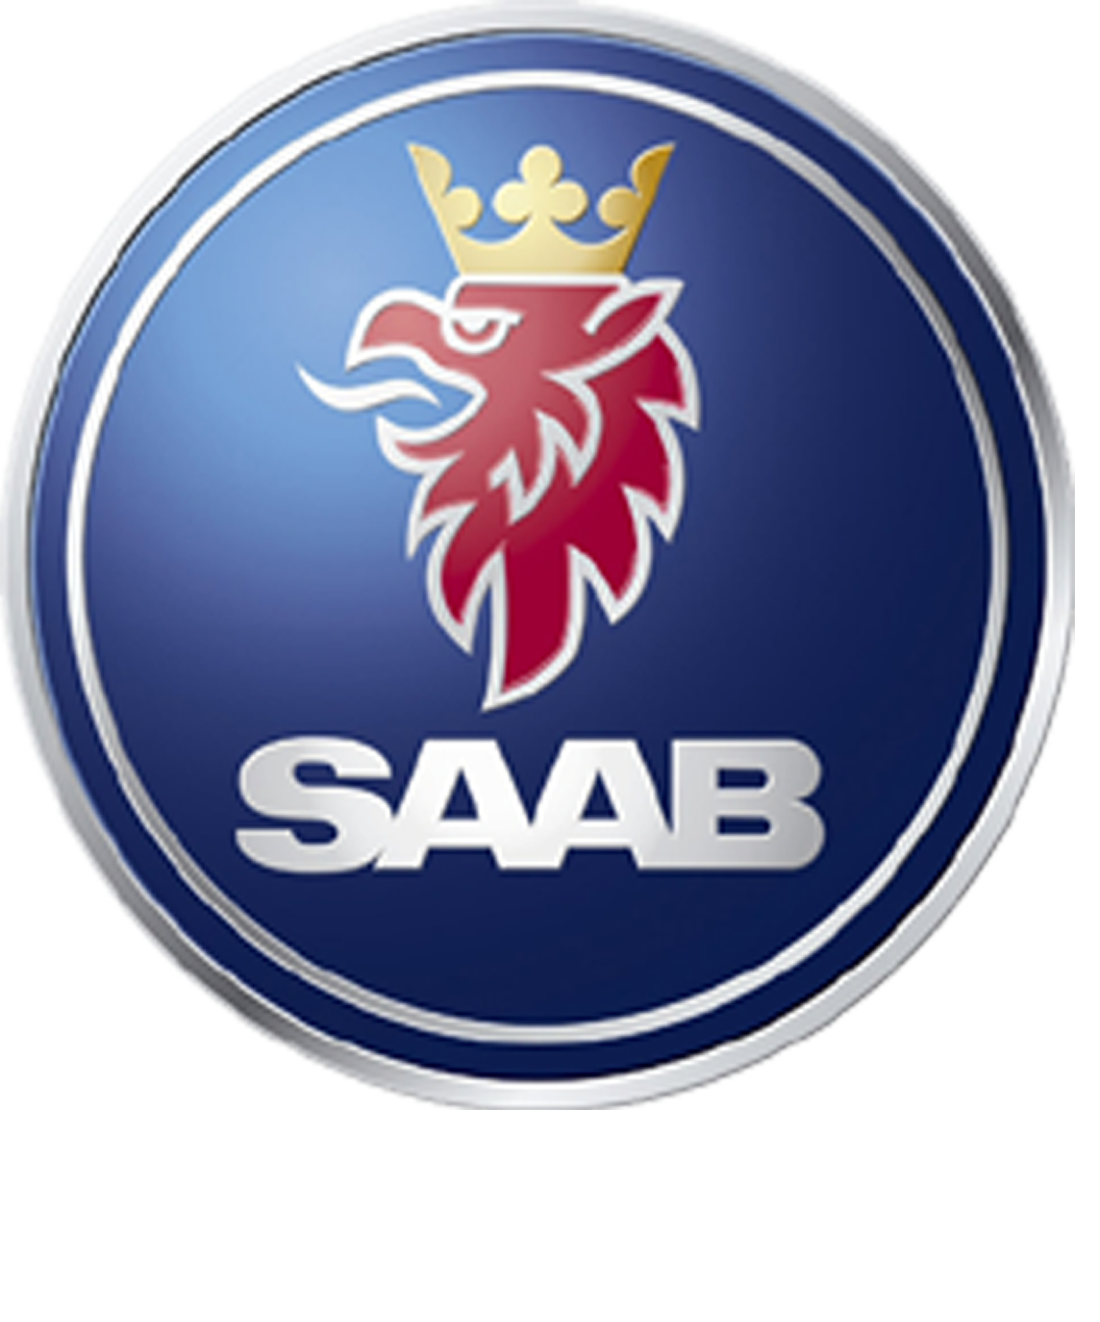 Saab Shift Cable Repair Kit